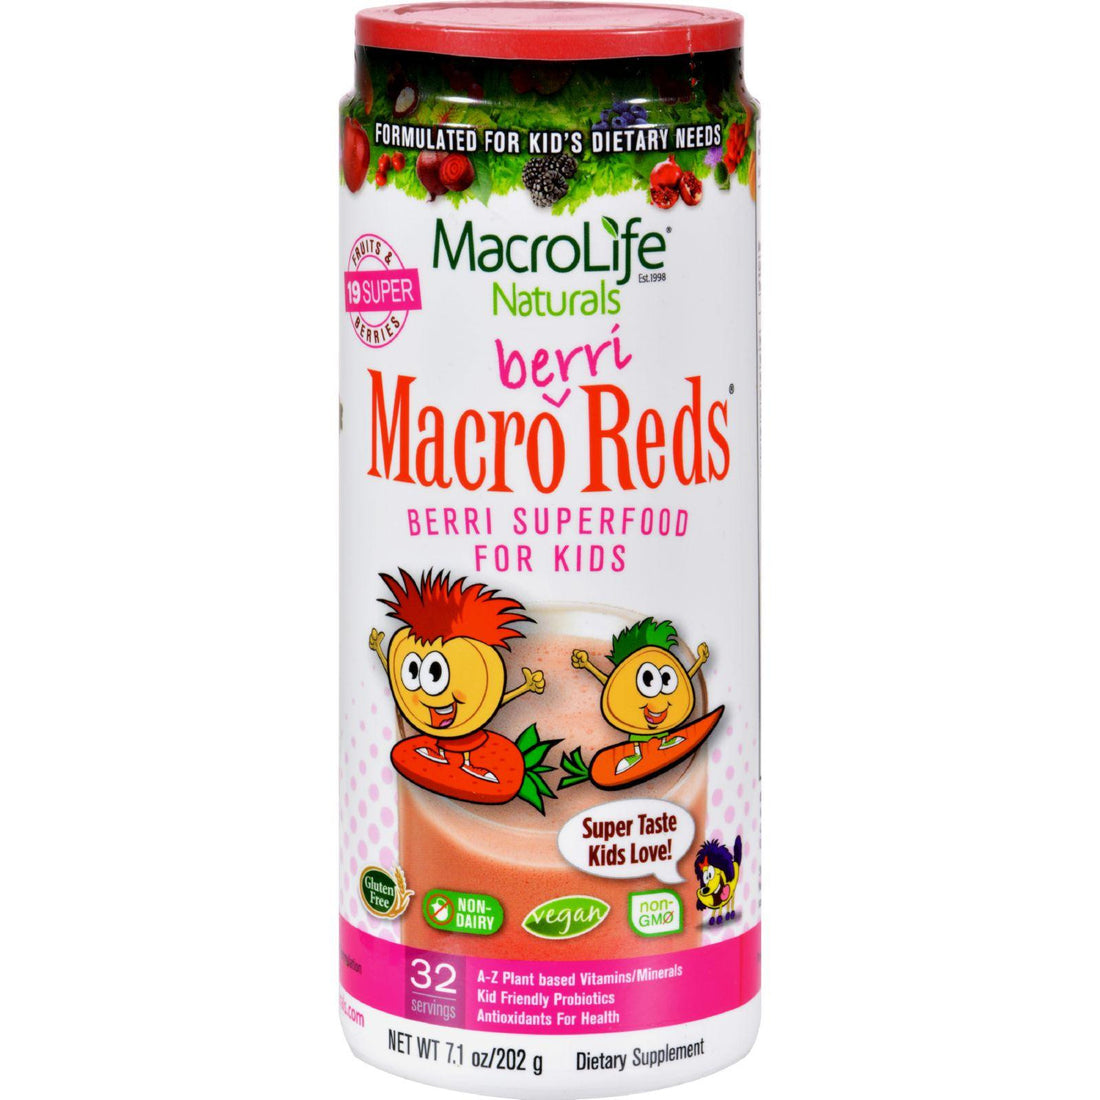 Mother Mantis: Macrolife Naturals Jr. Macro Reds For Kids Berri - 7.1 Oz Macrolife Naturals